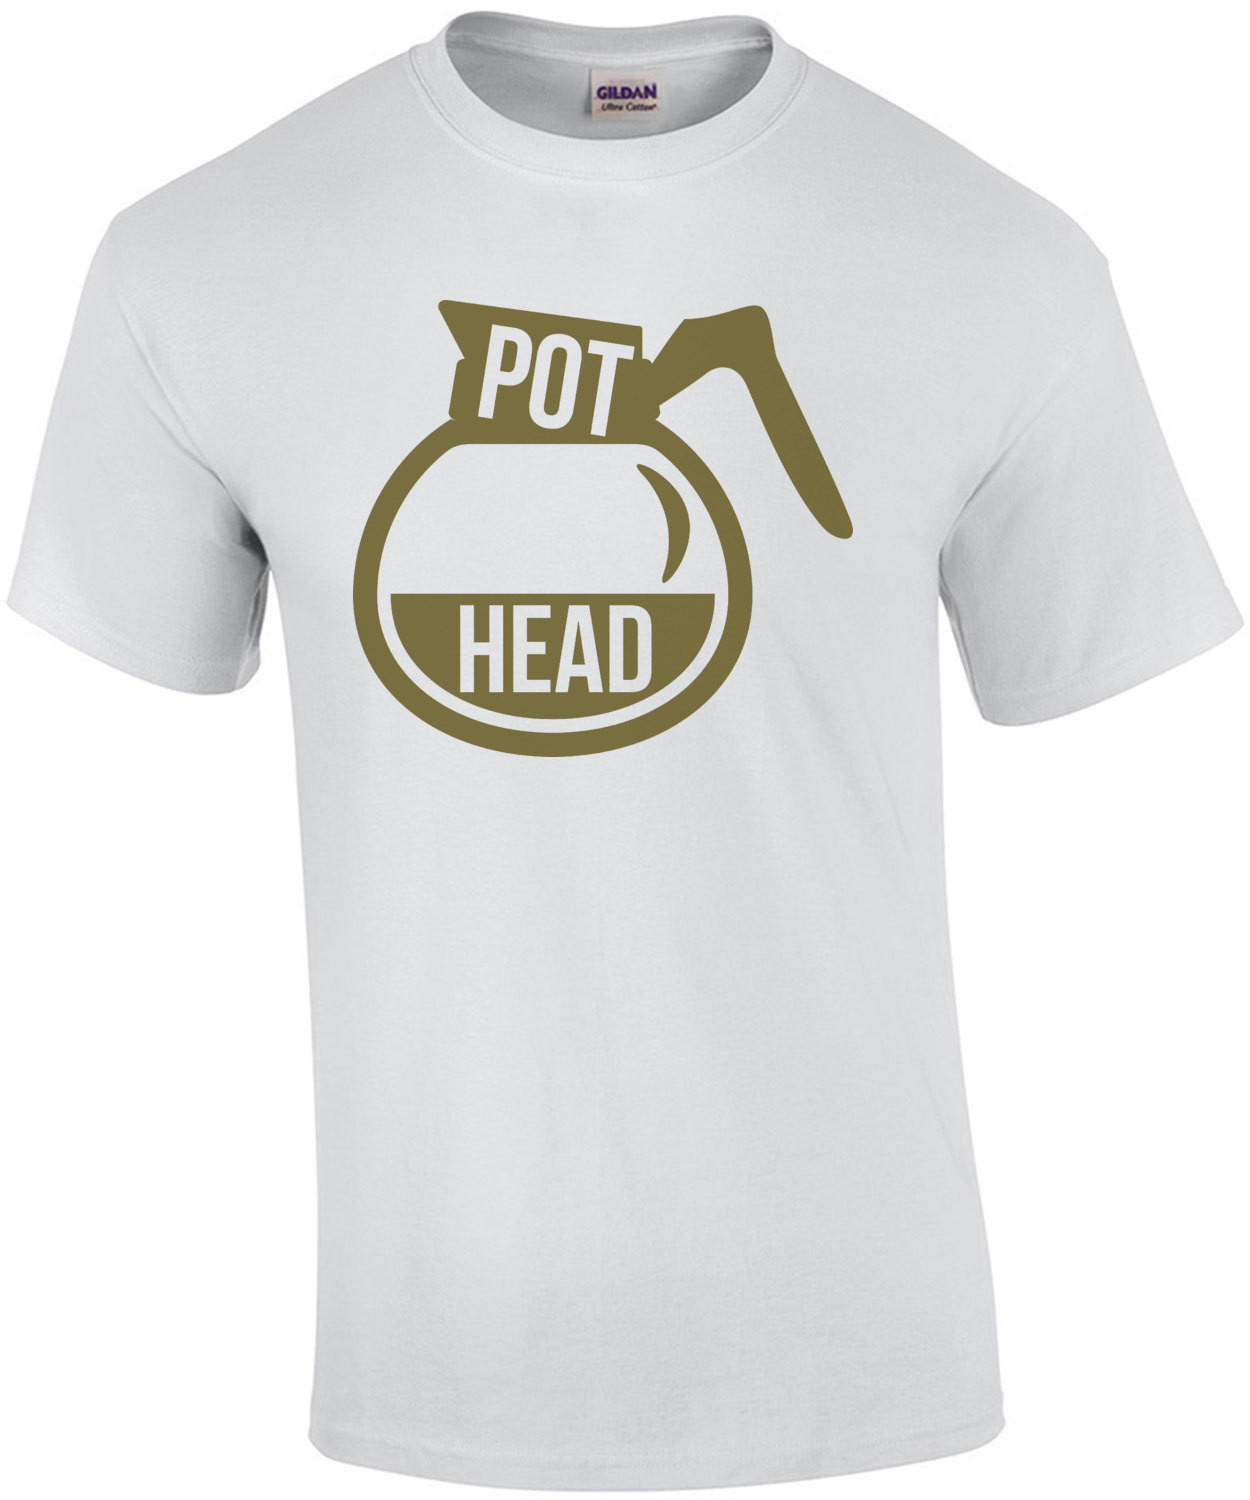 Pot Head Coffee Lover T-Shirt